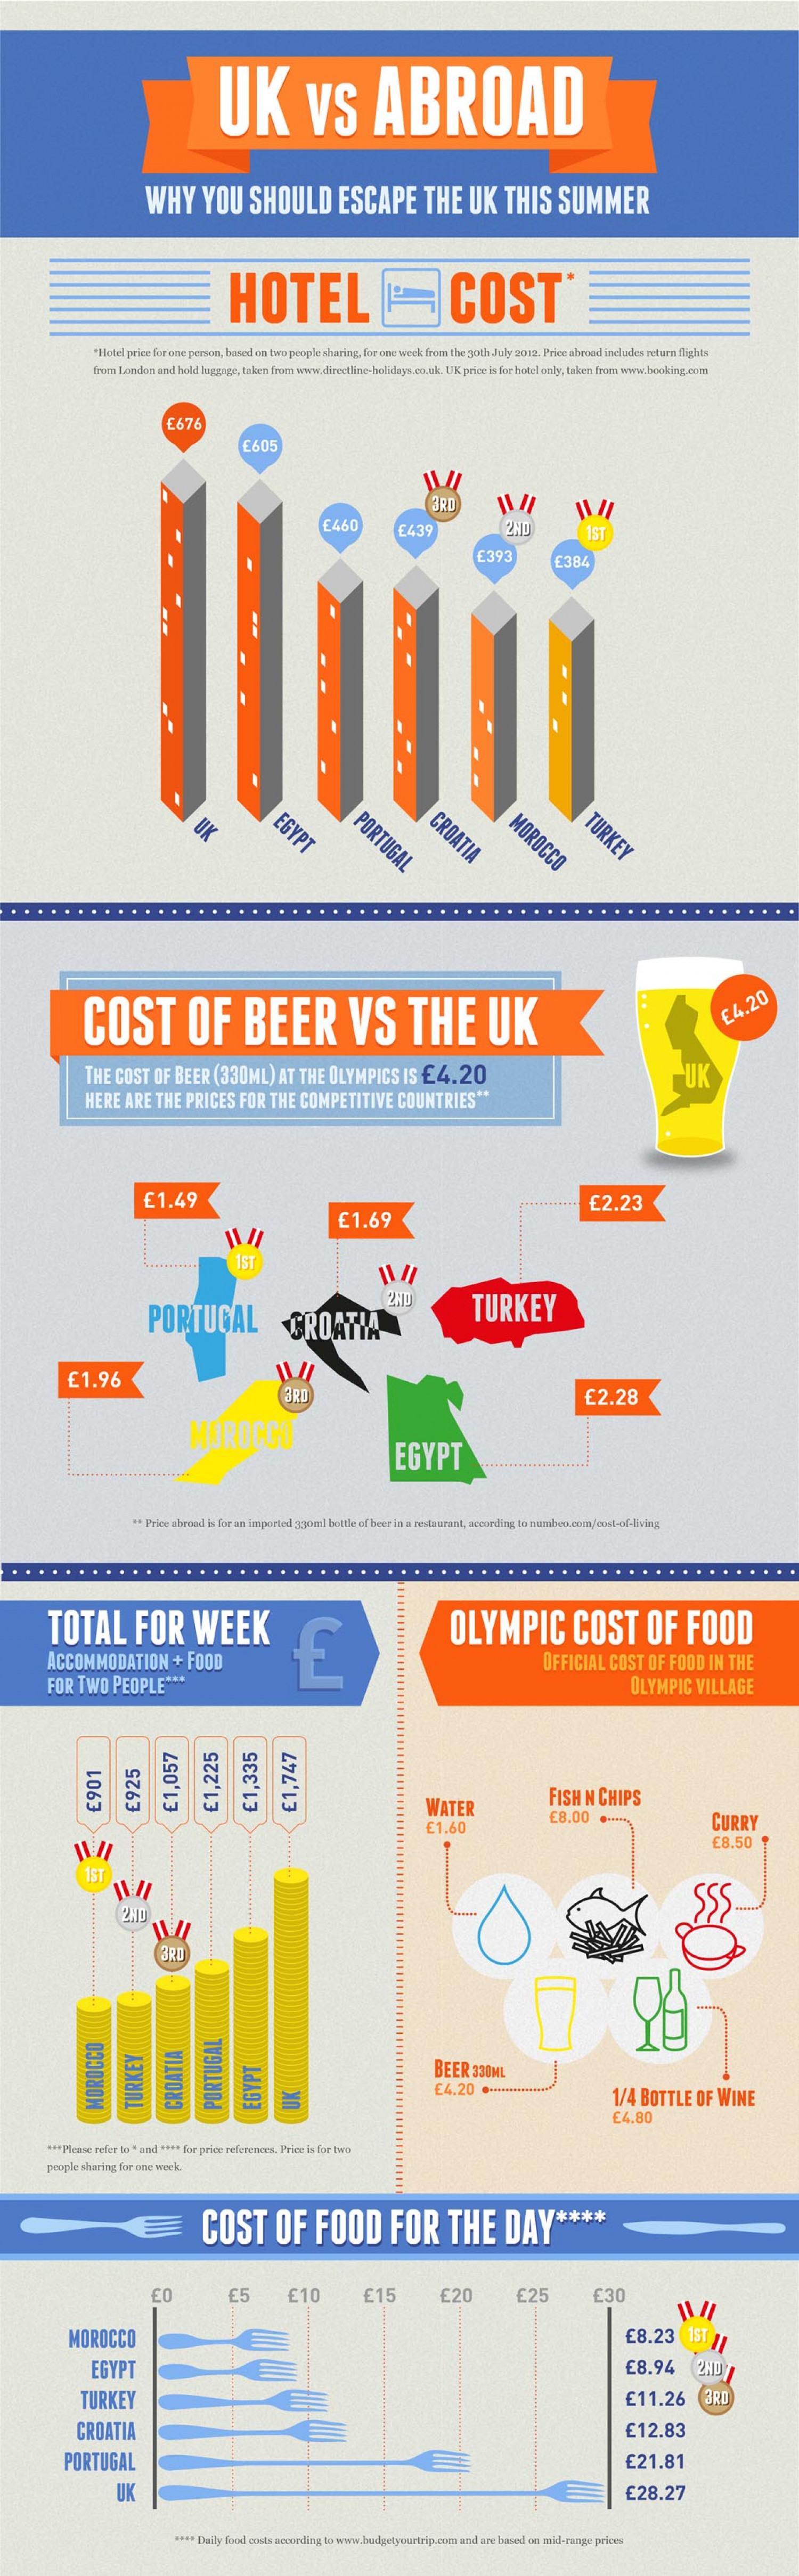 UK vs Abroad during the Olympics Infographic